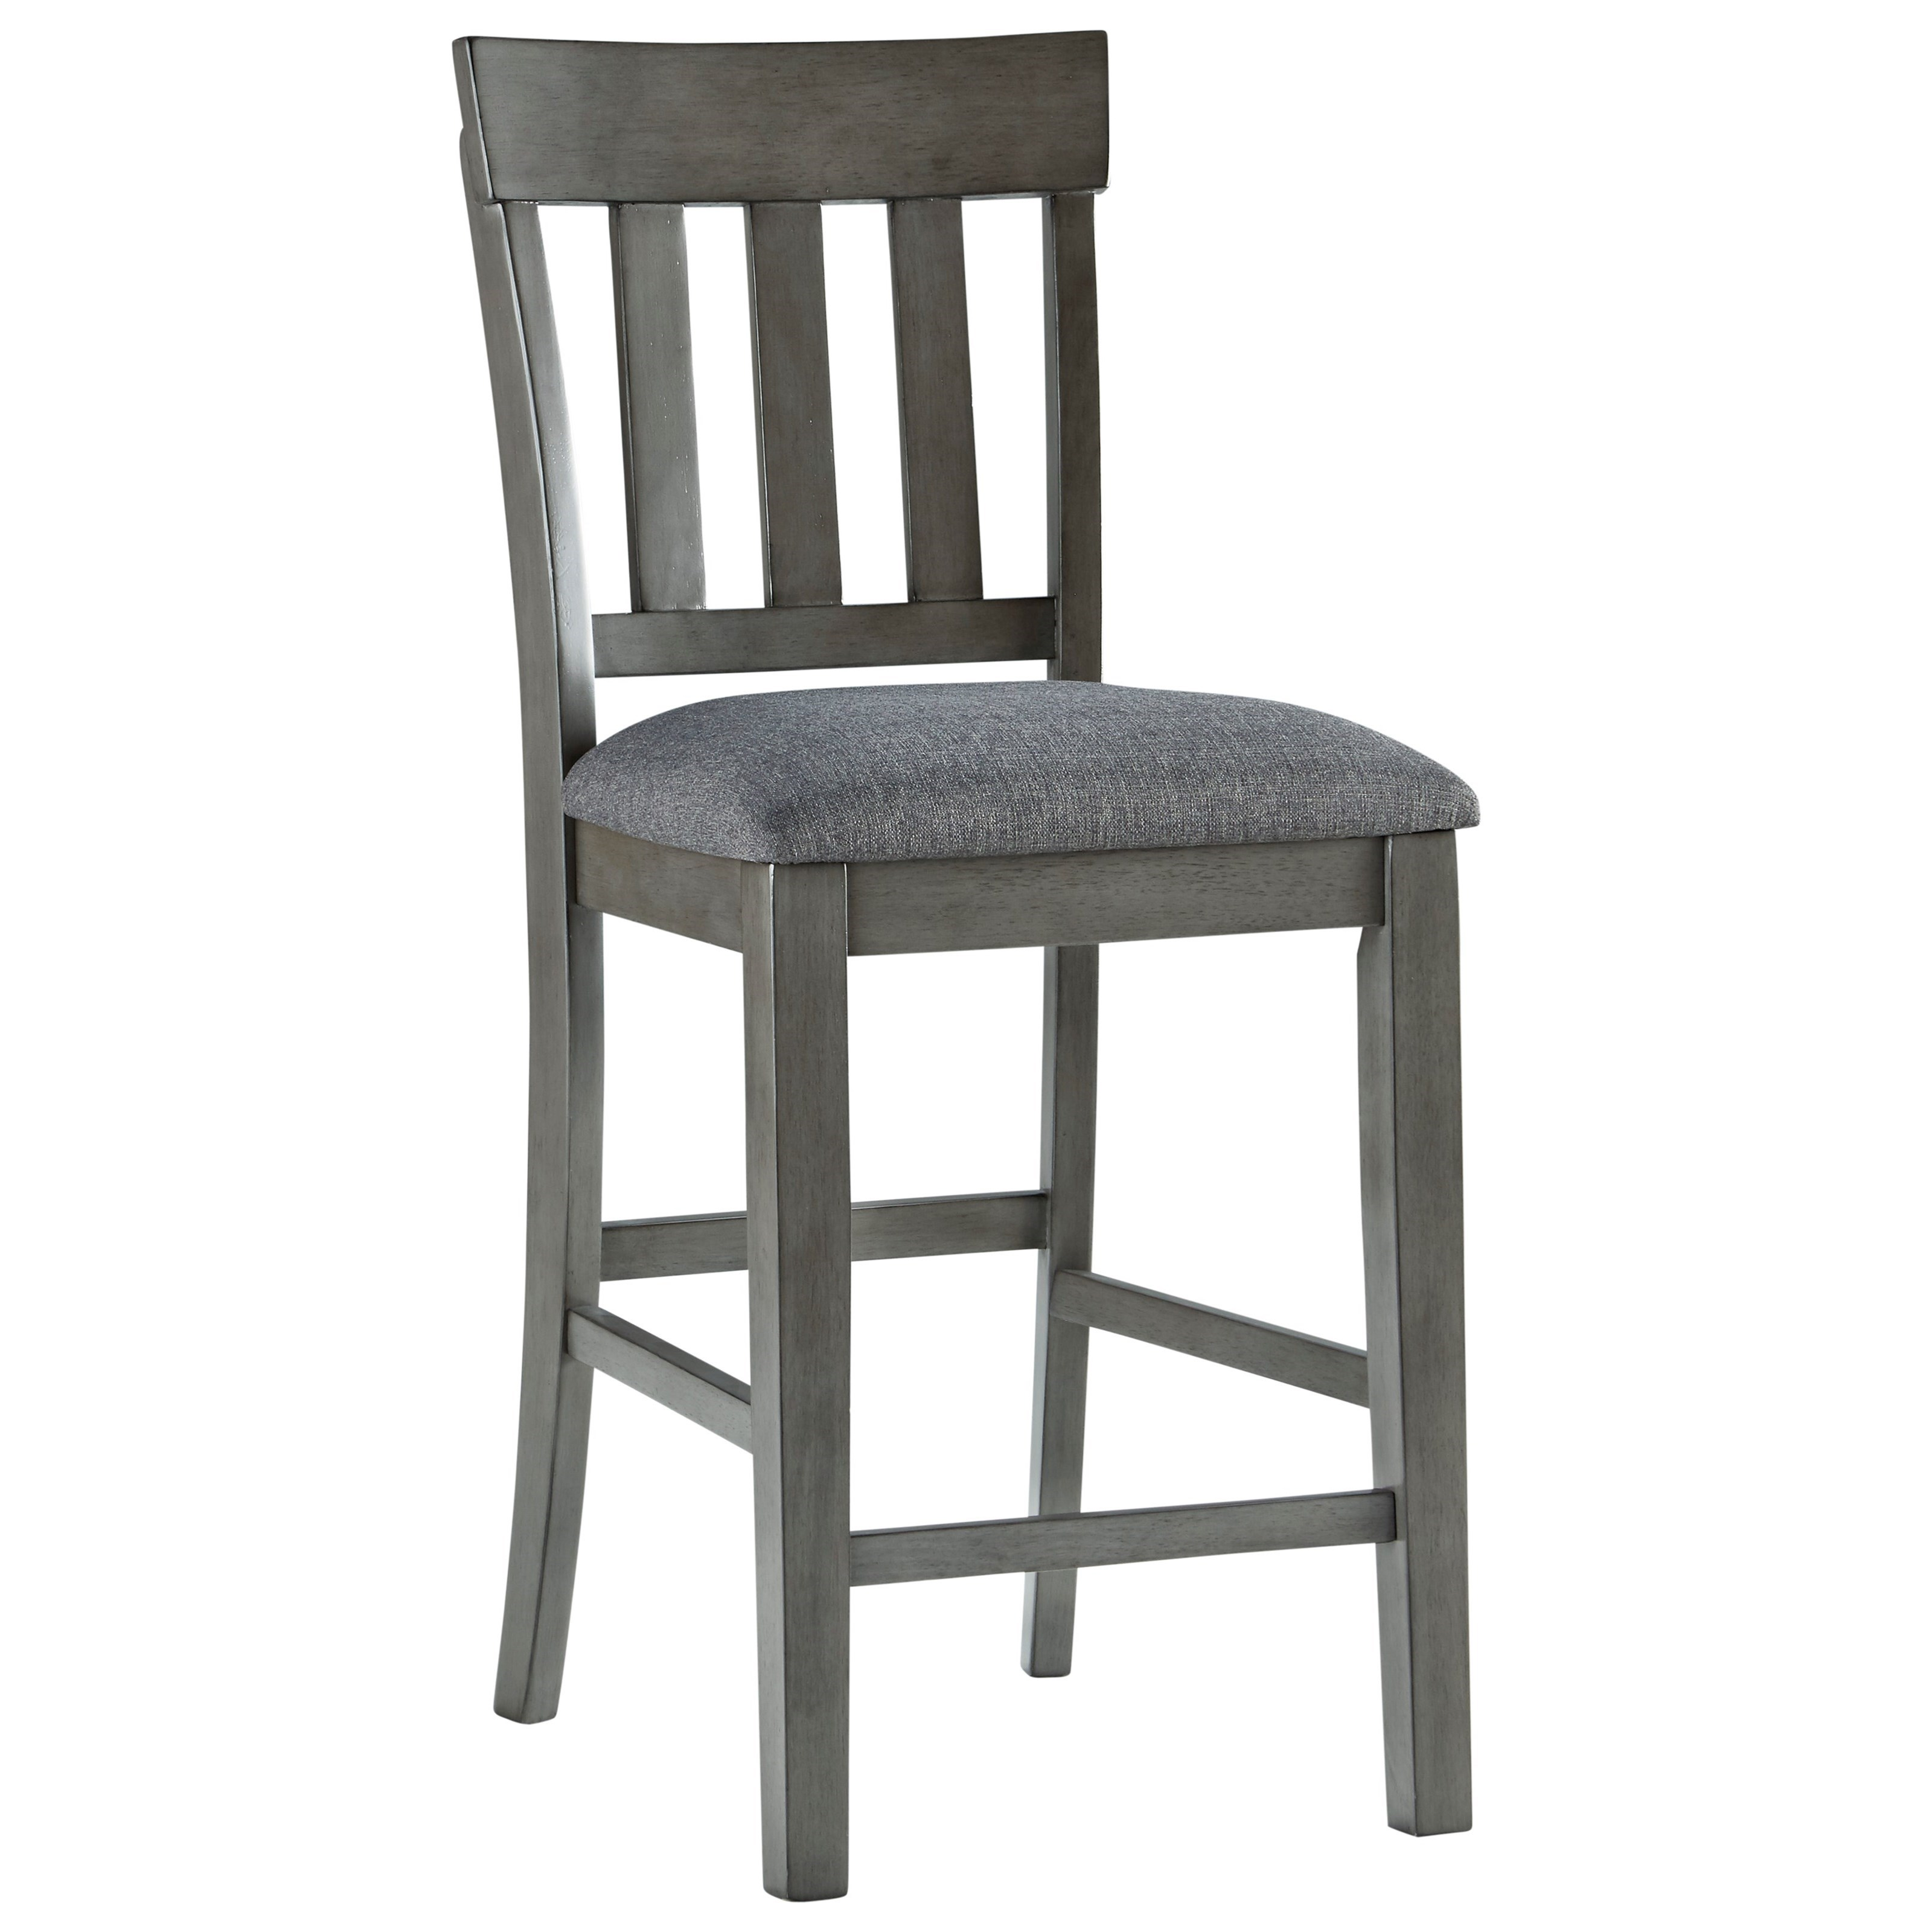 Hallanden Counter Height Bar Stool by Signature Design by Ashley at VanDrie Home Furnishings